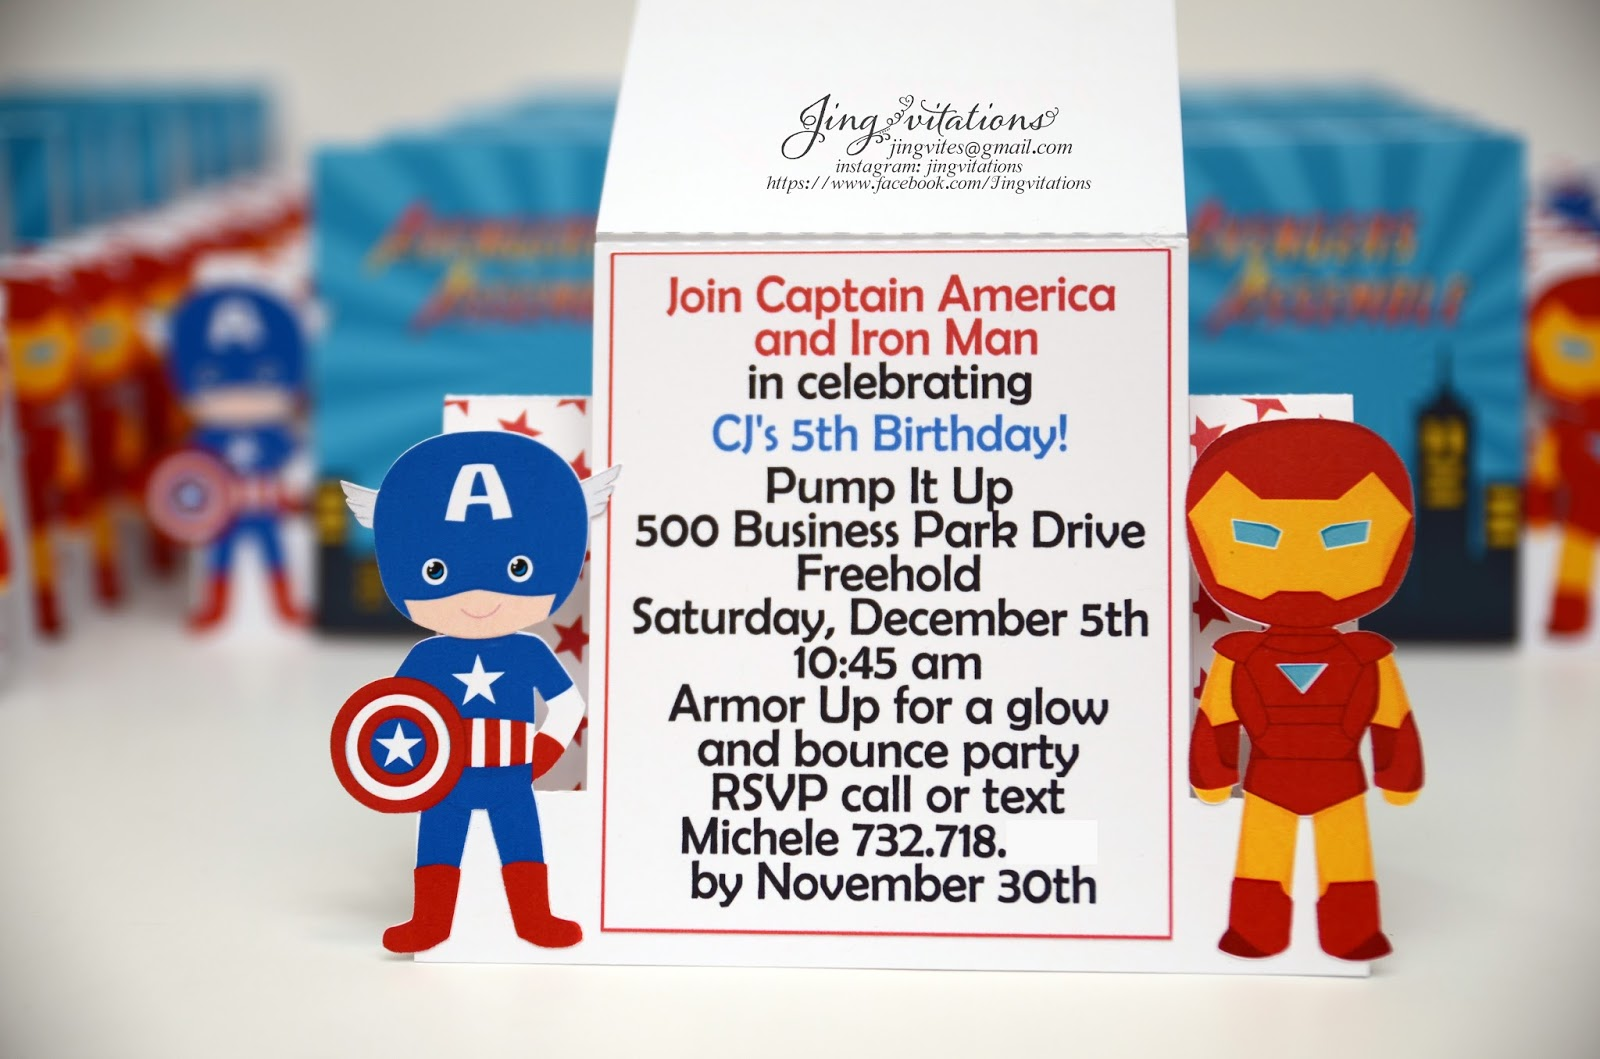 Jingvitations: birthday invitations